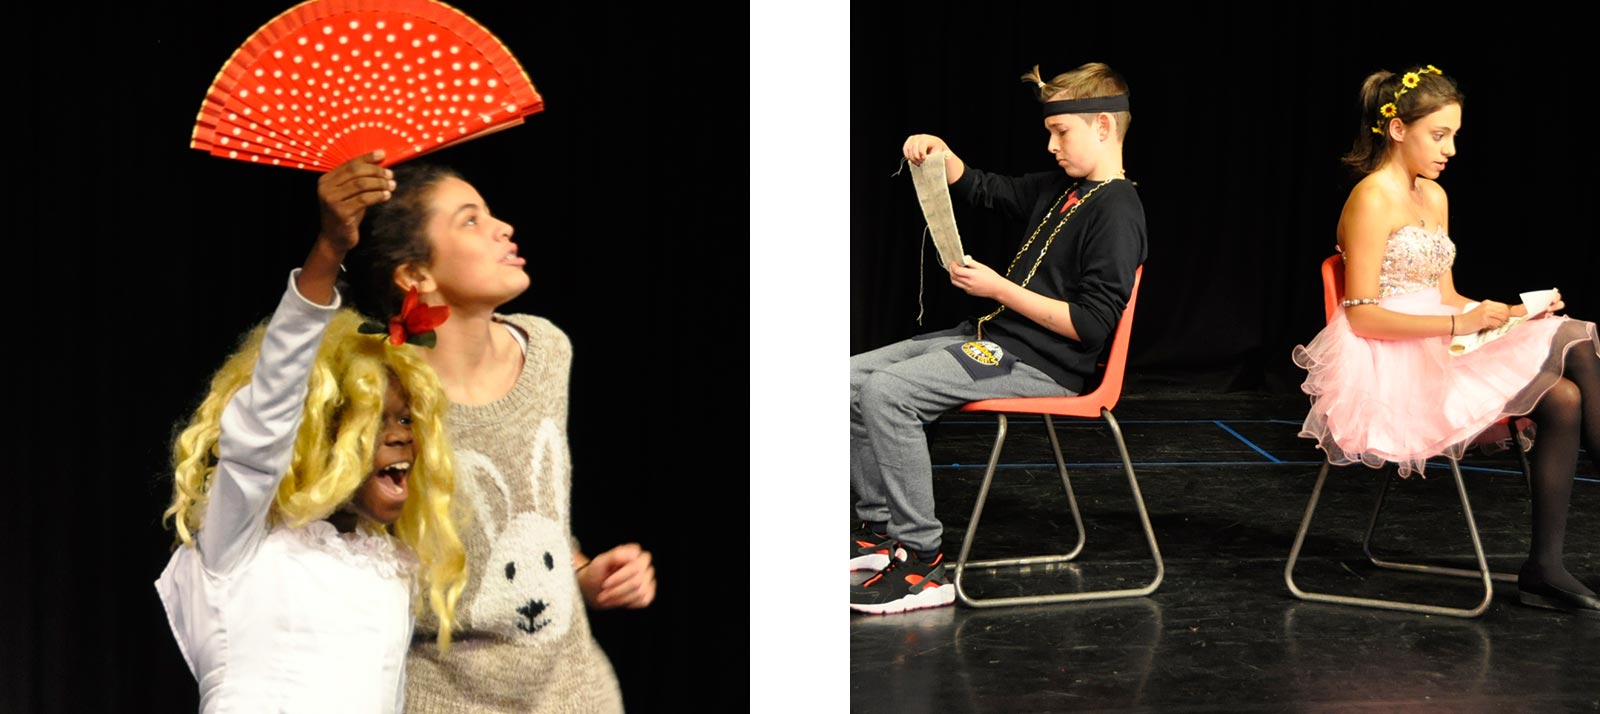 Martineau S House Drama Another Winner Aldenham School